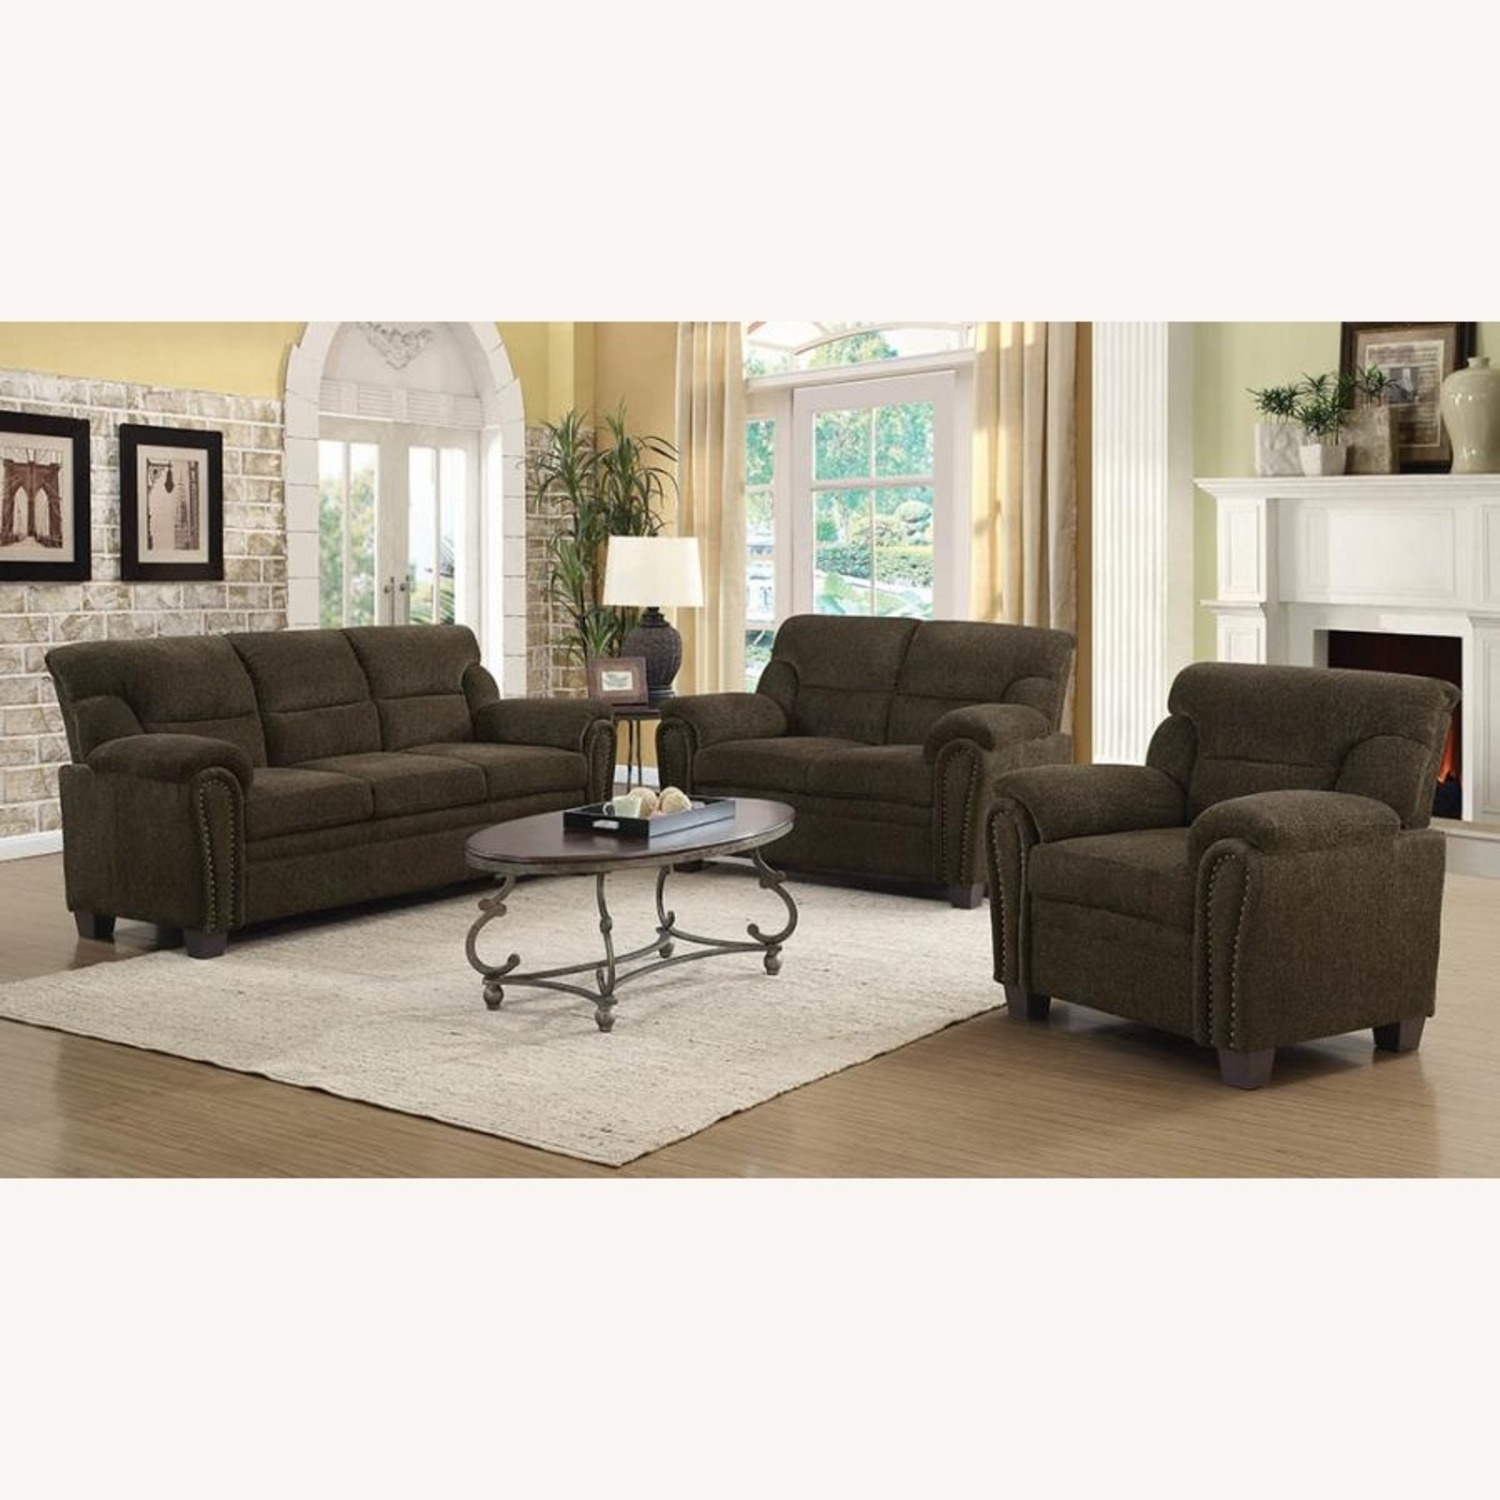 Sofa In Brown Chenille Upholstery Finish - image-6